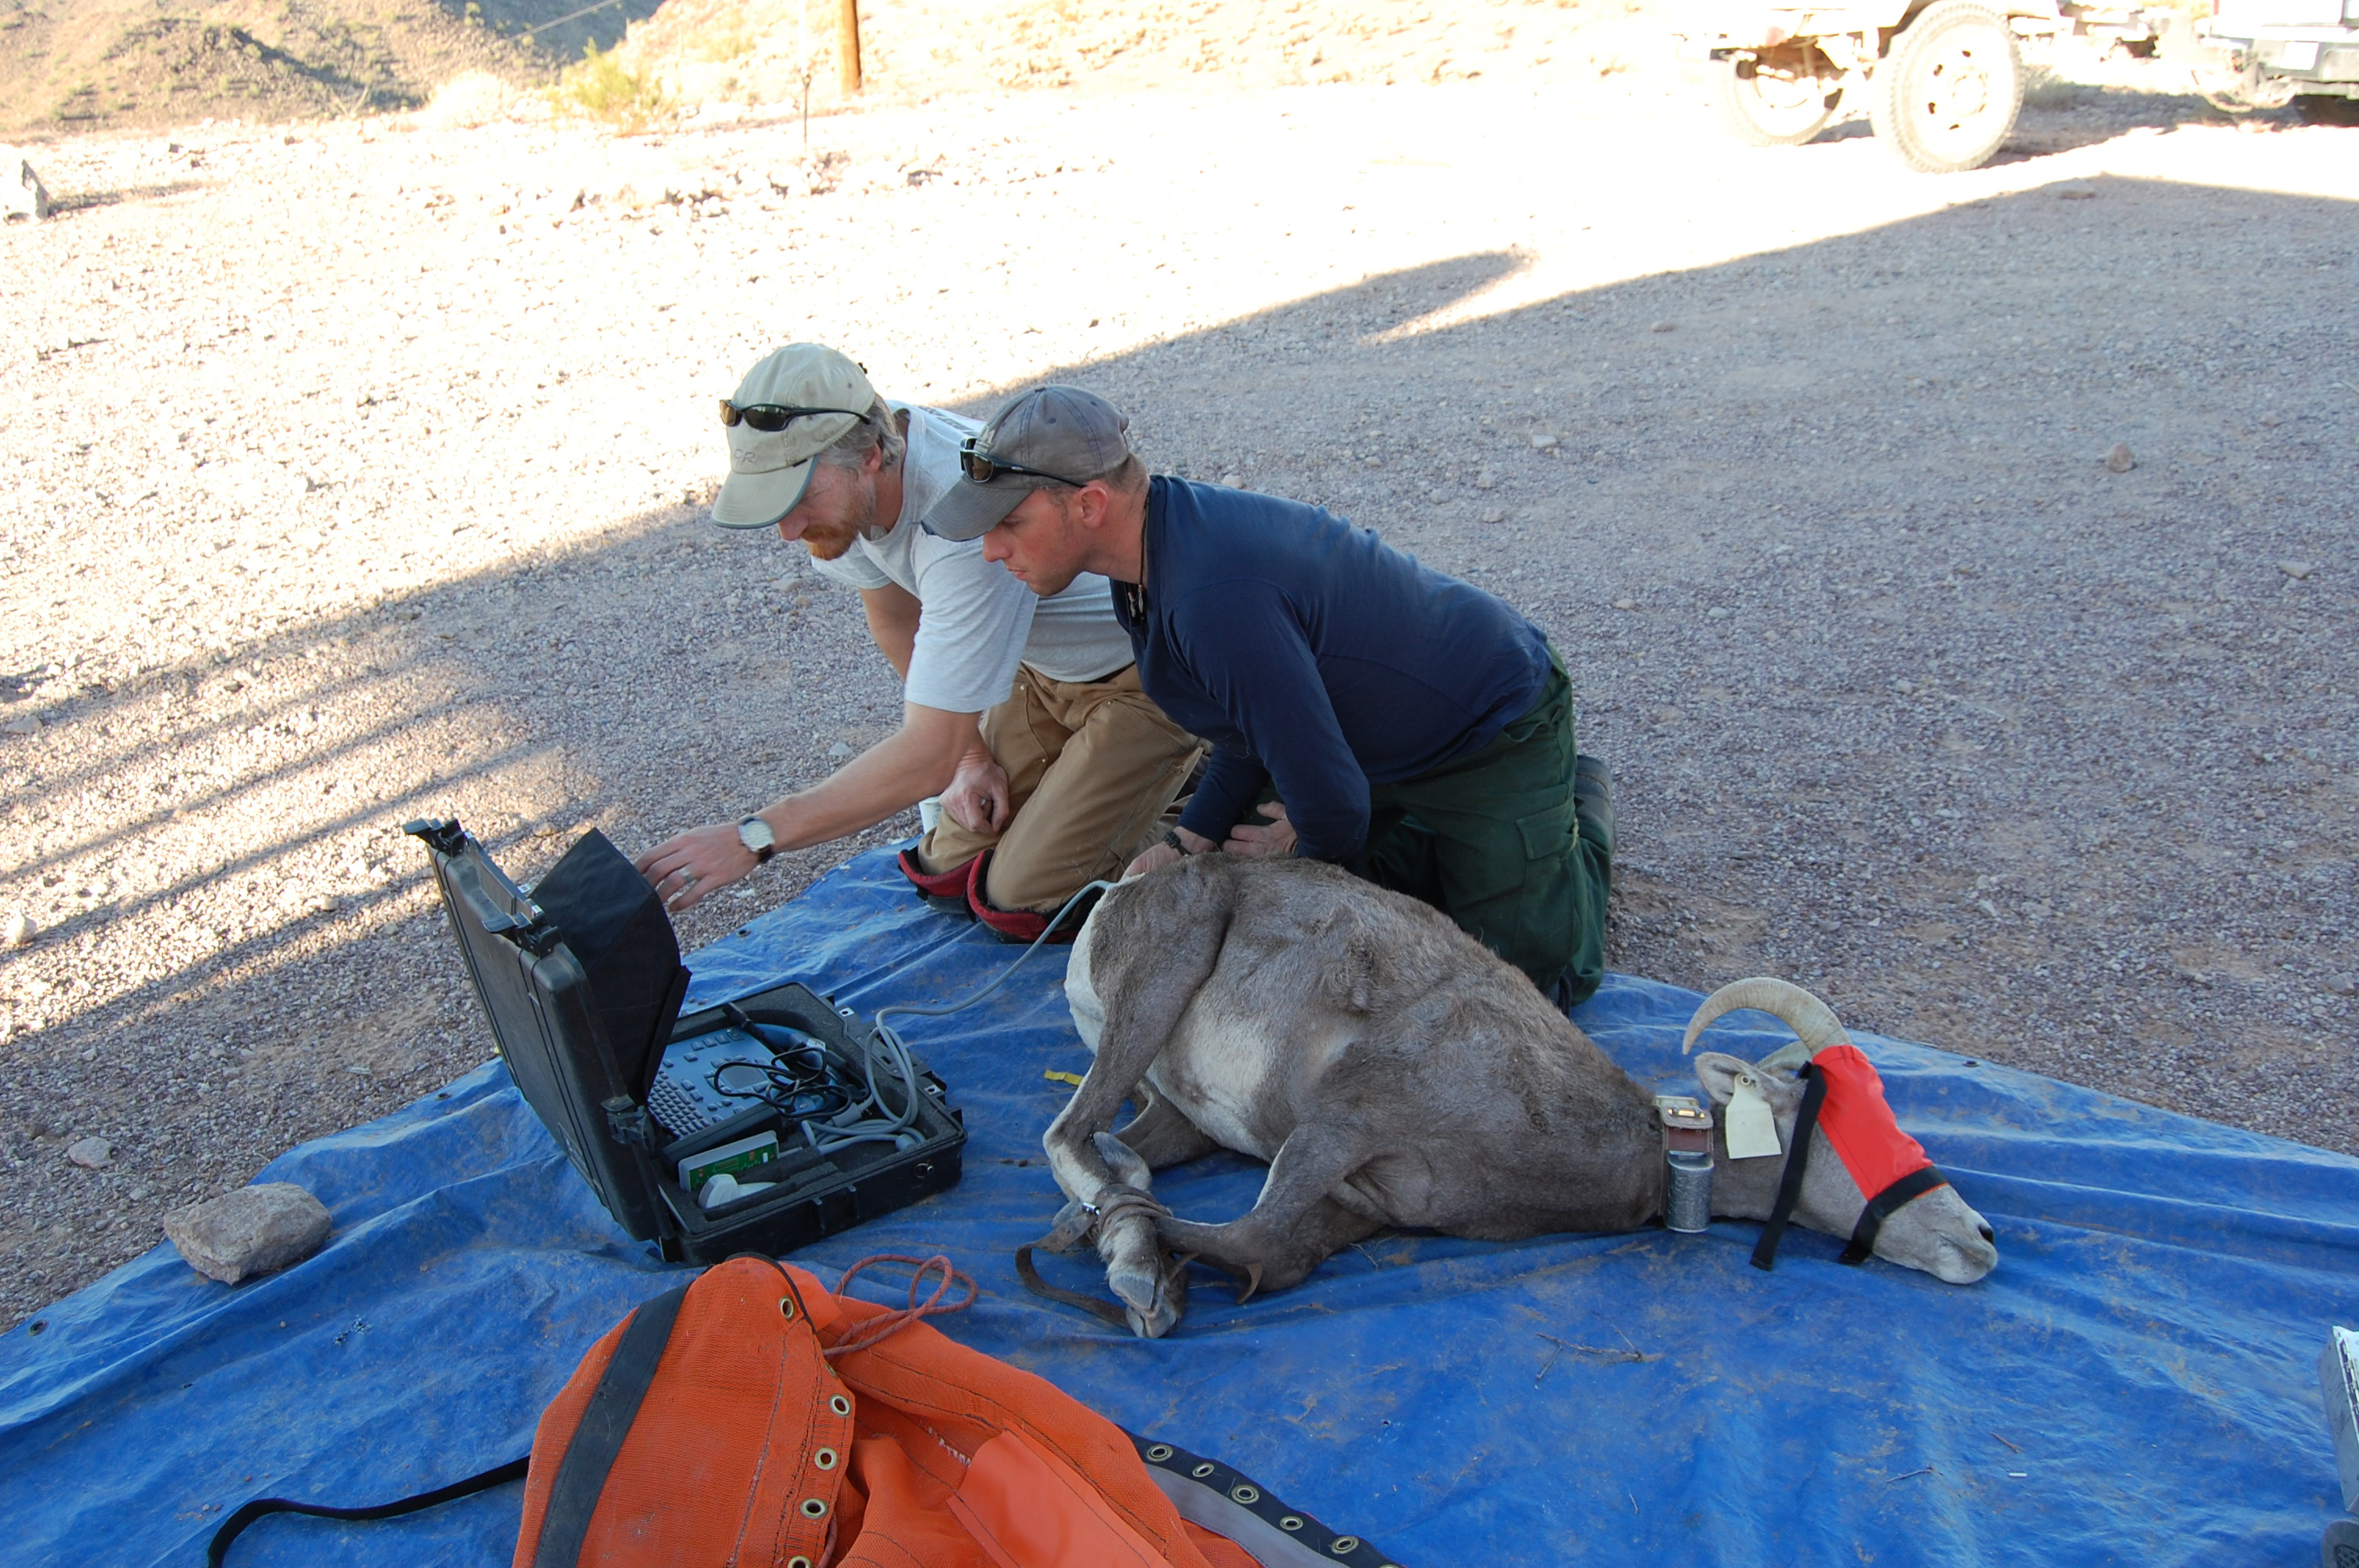 Dr. Tom Stephenson (left) and unit graduate student Matt Overstreet (right) using a portable ultrasound to measure body fat on a female desert bighorn sheep captured on the Kofa National Wildlife Refuge, Arizona.